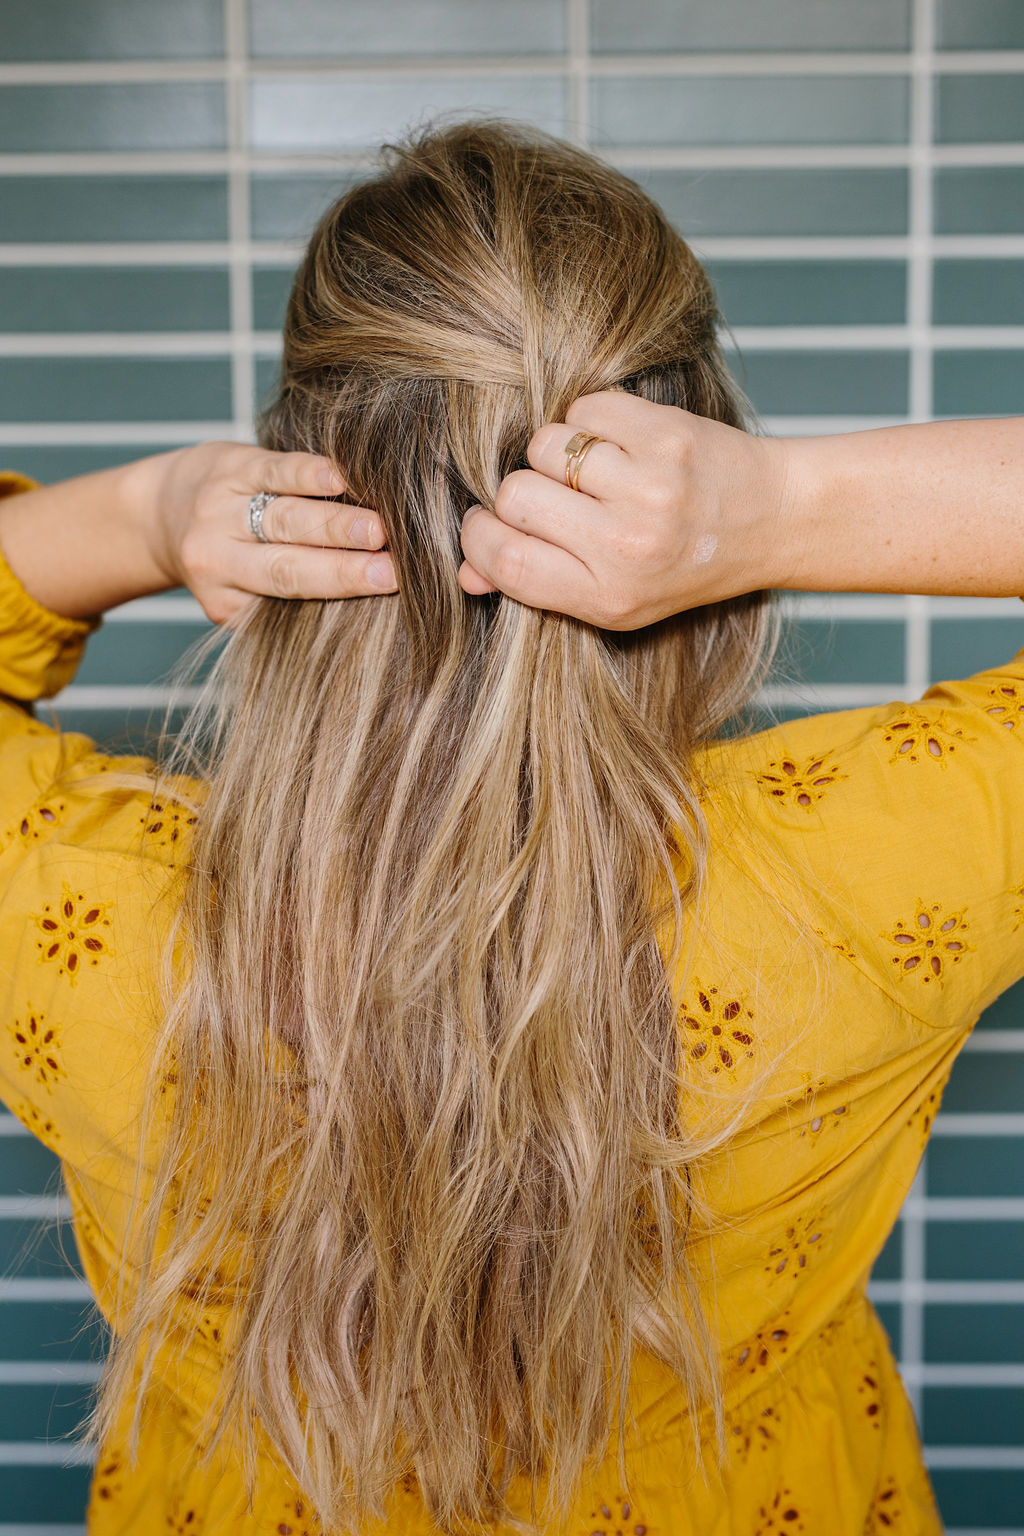 Hands separating sections of the hair